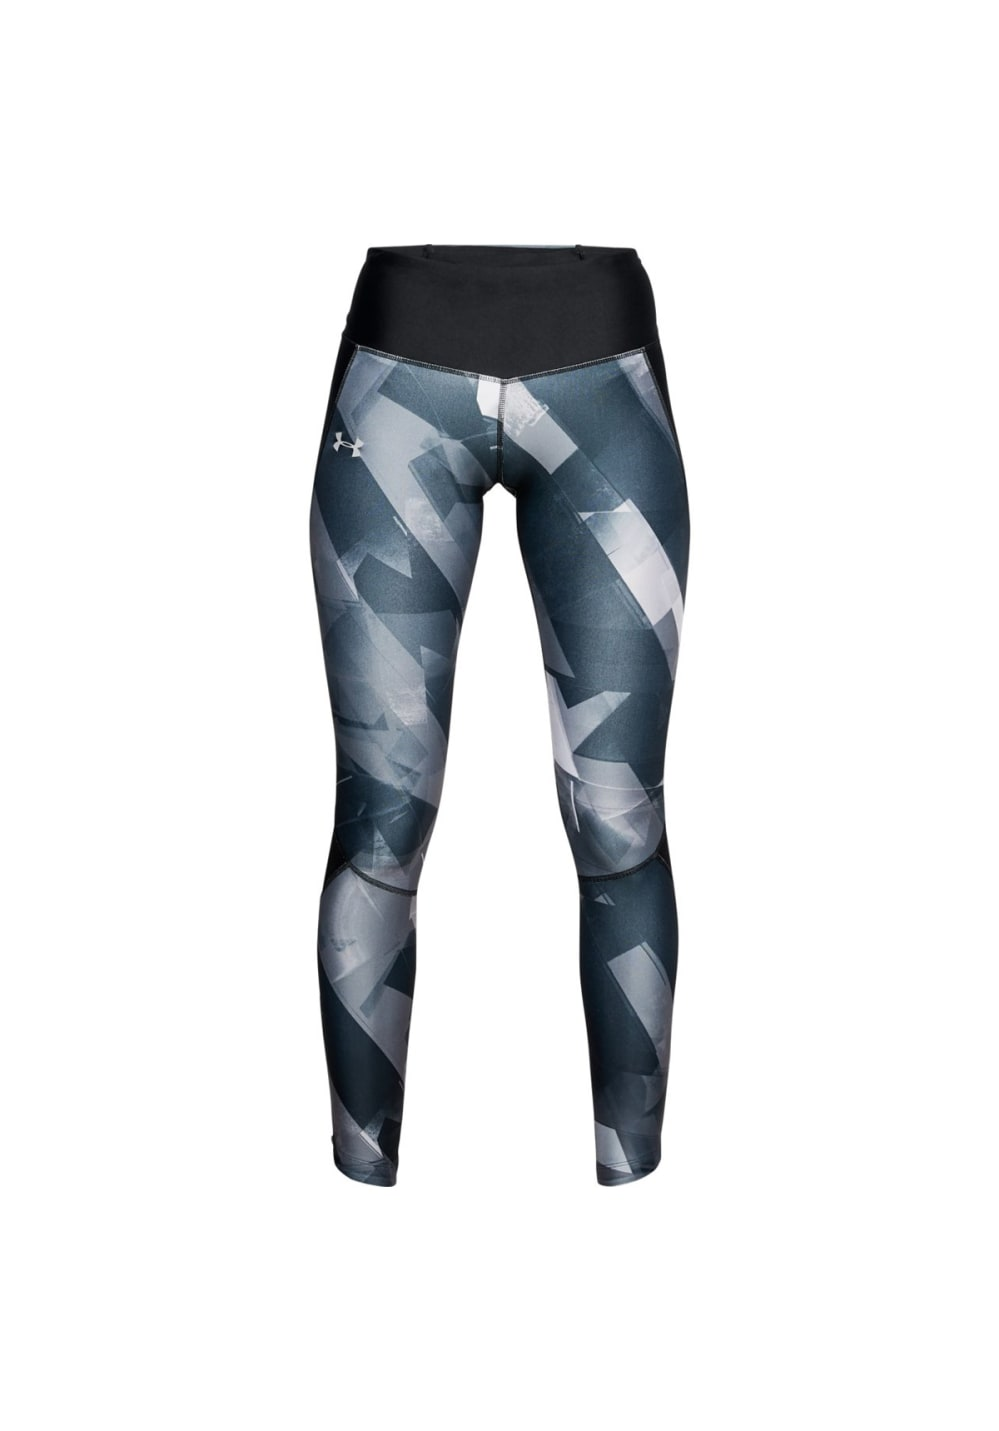 Under Armour Armour Fly Fast Printed Tight - Laufhosen für Damen - Grau, Gr. XS